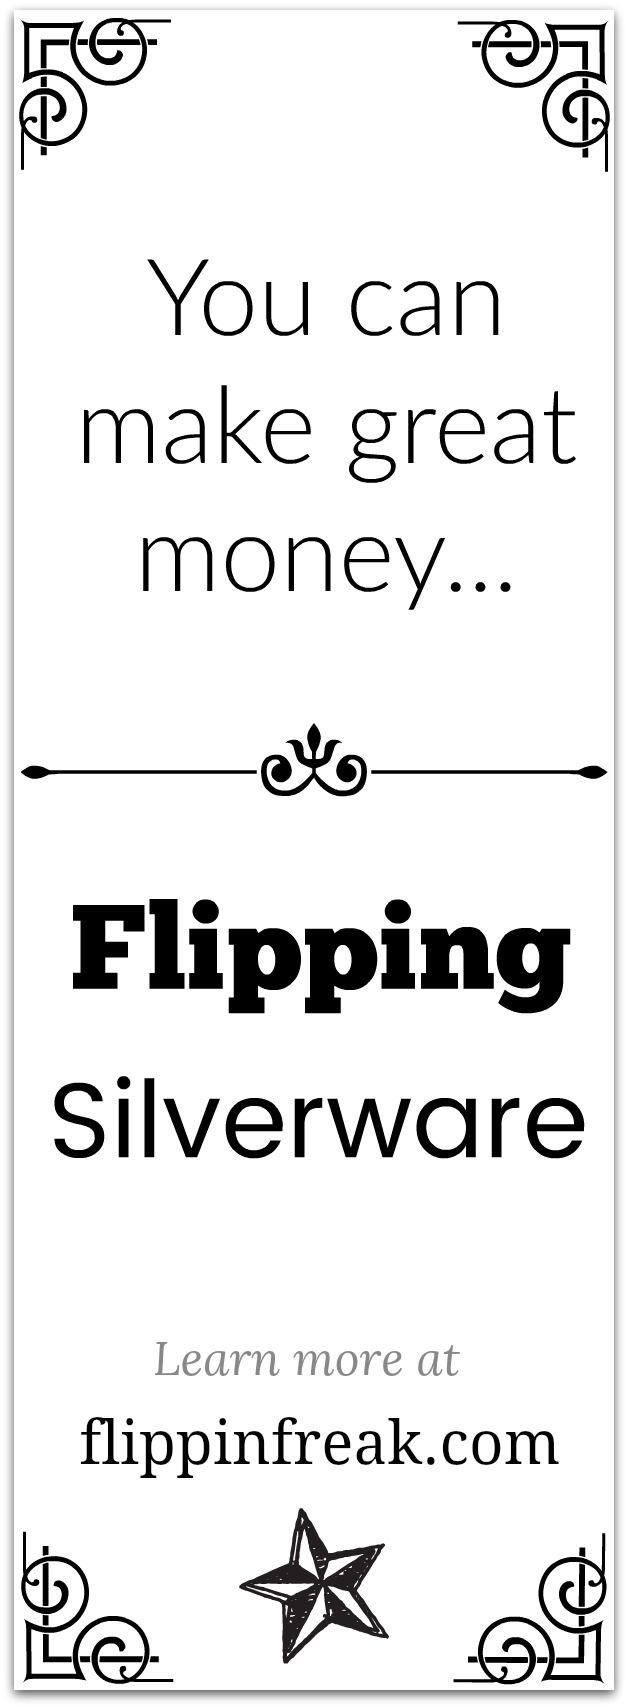 Learn how to make great money flipping Silverware! #sterlingsilver #sterling #silver #collectibles #flipping #fllippinfreak